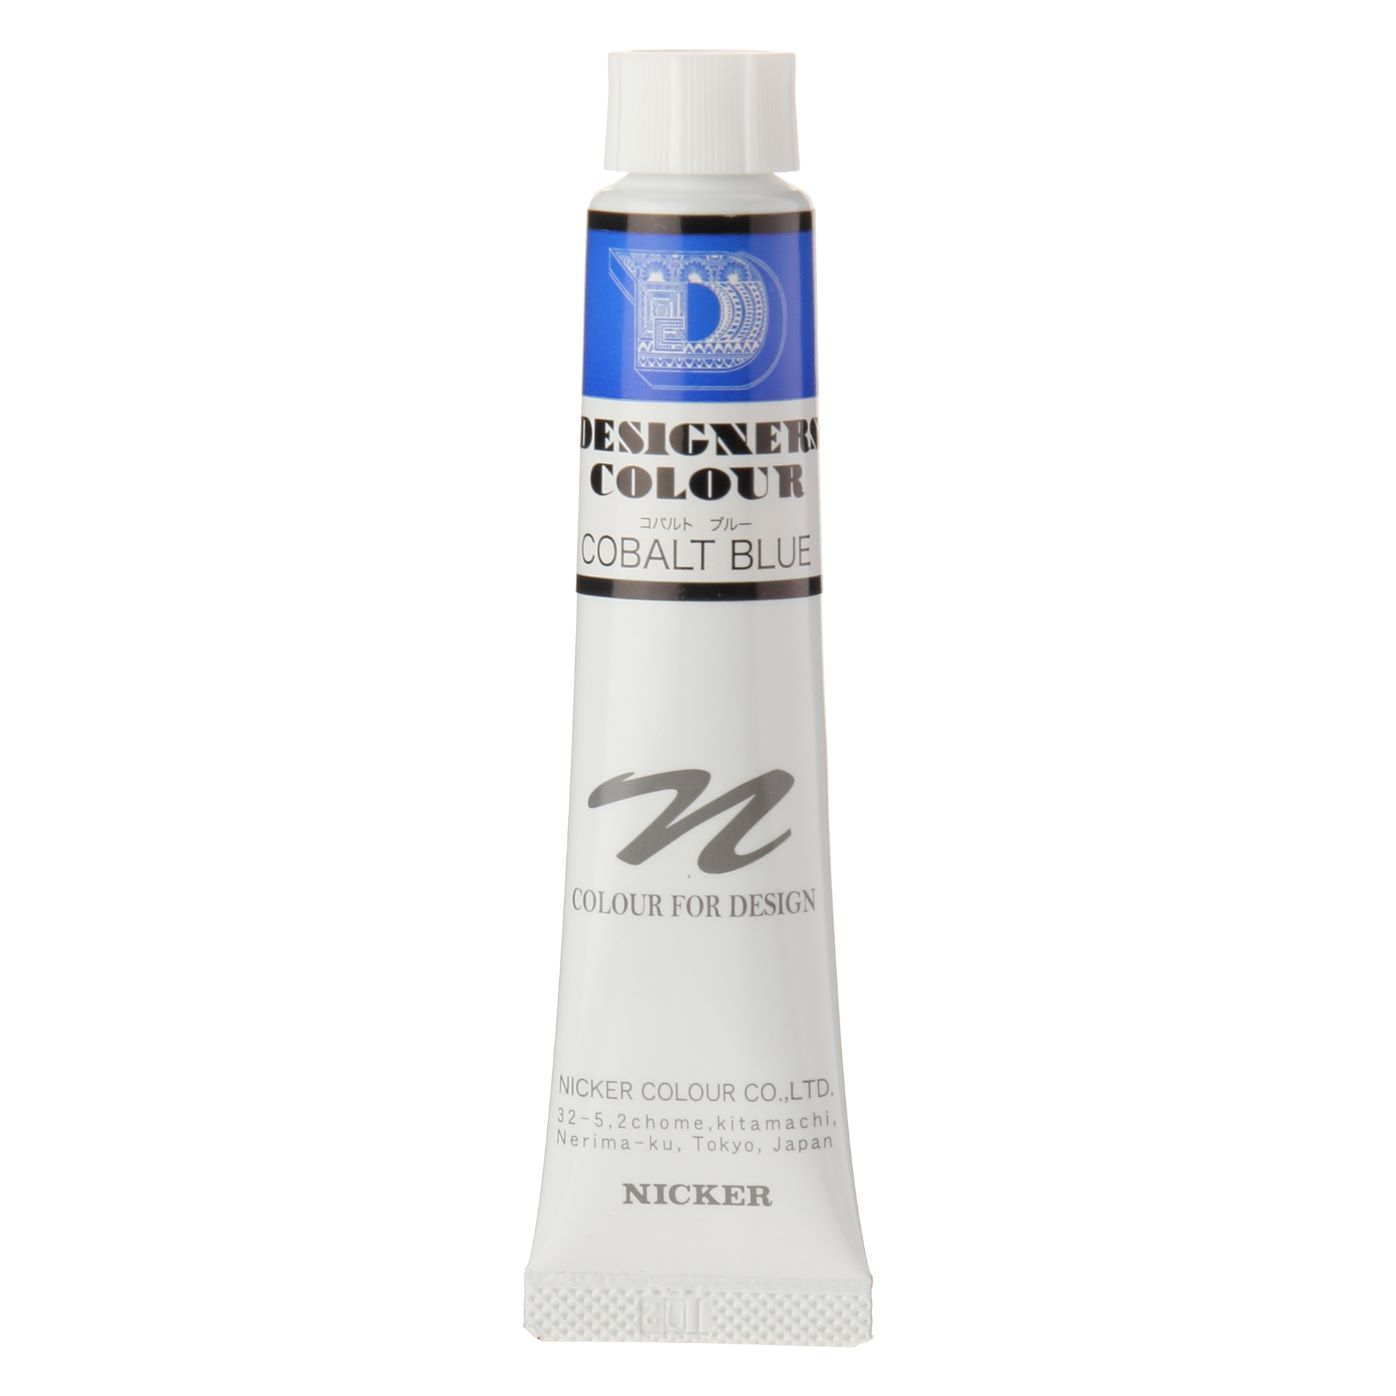 DESIGNERS COLOUR 20ml 537 COBALT BLUE